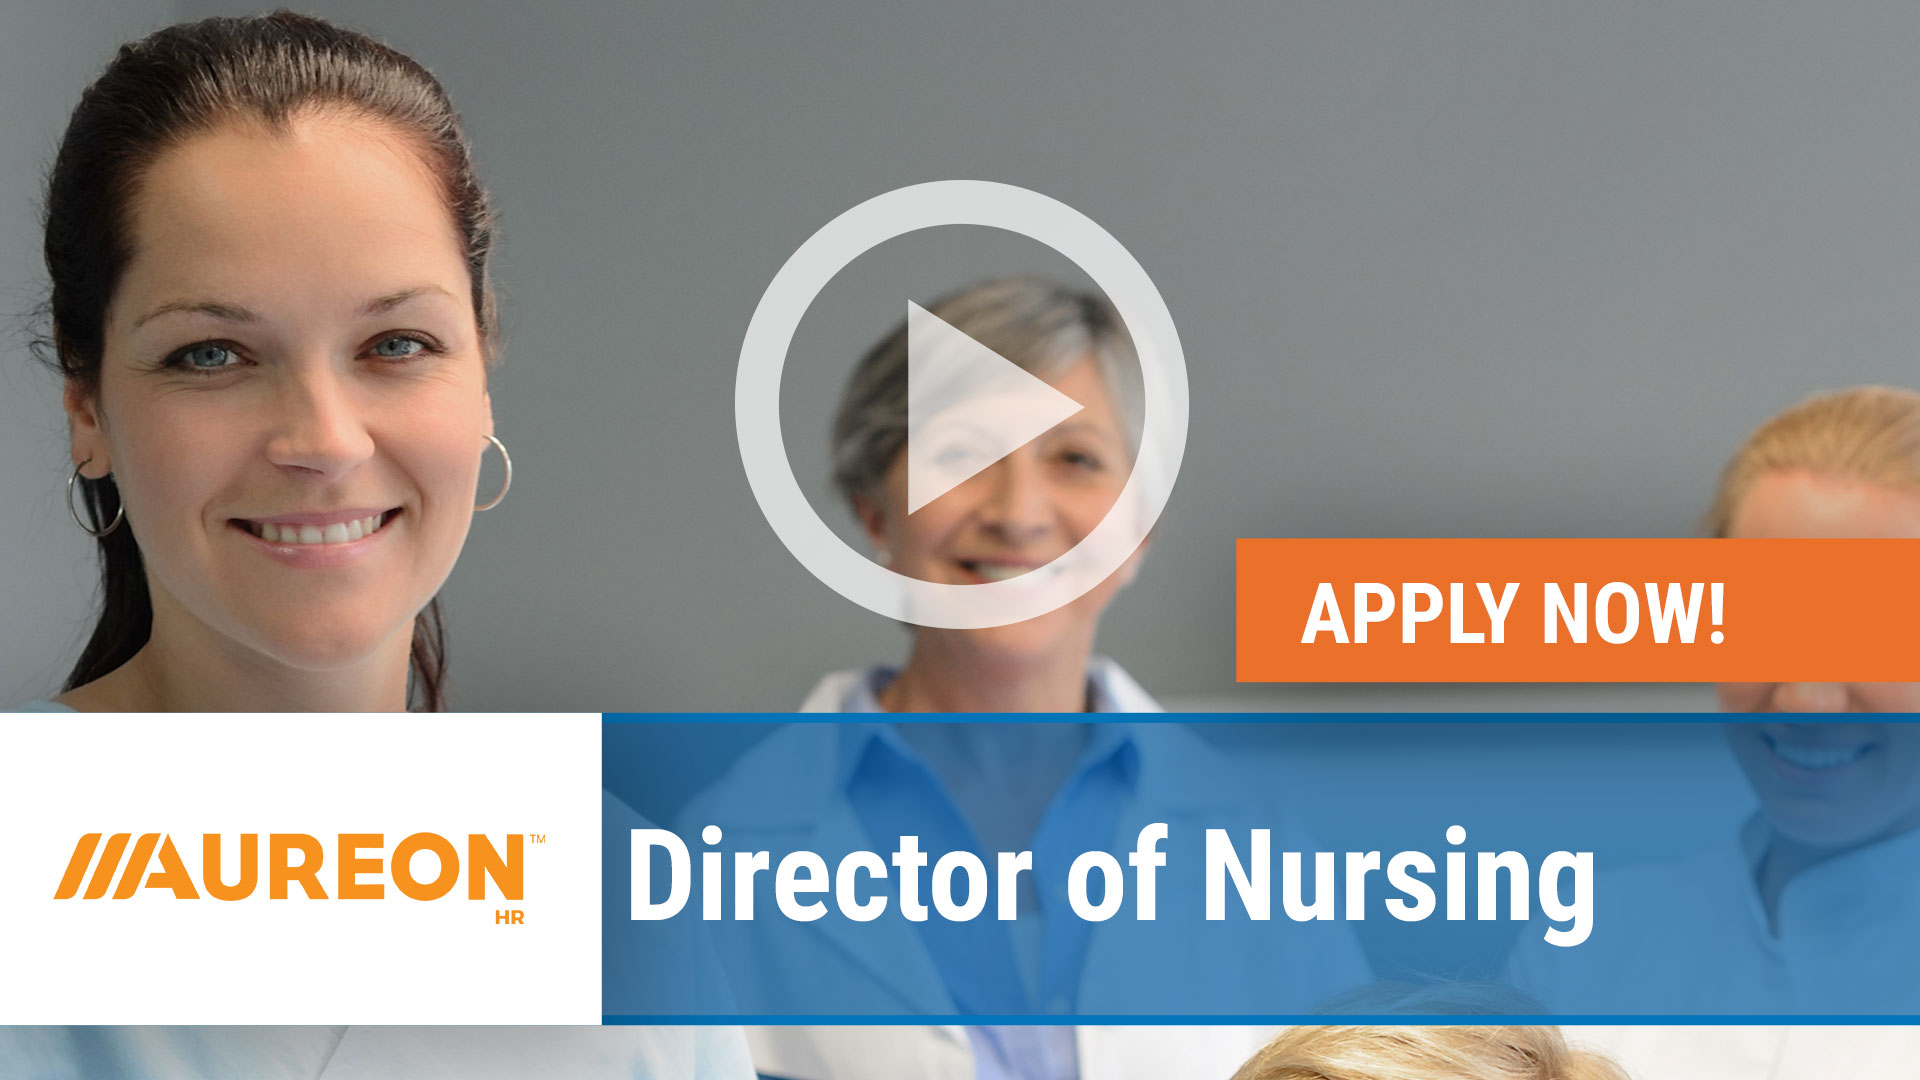 Watch our careers video for available job opening Director of Nursing in Dallas, TX